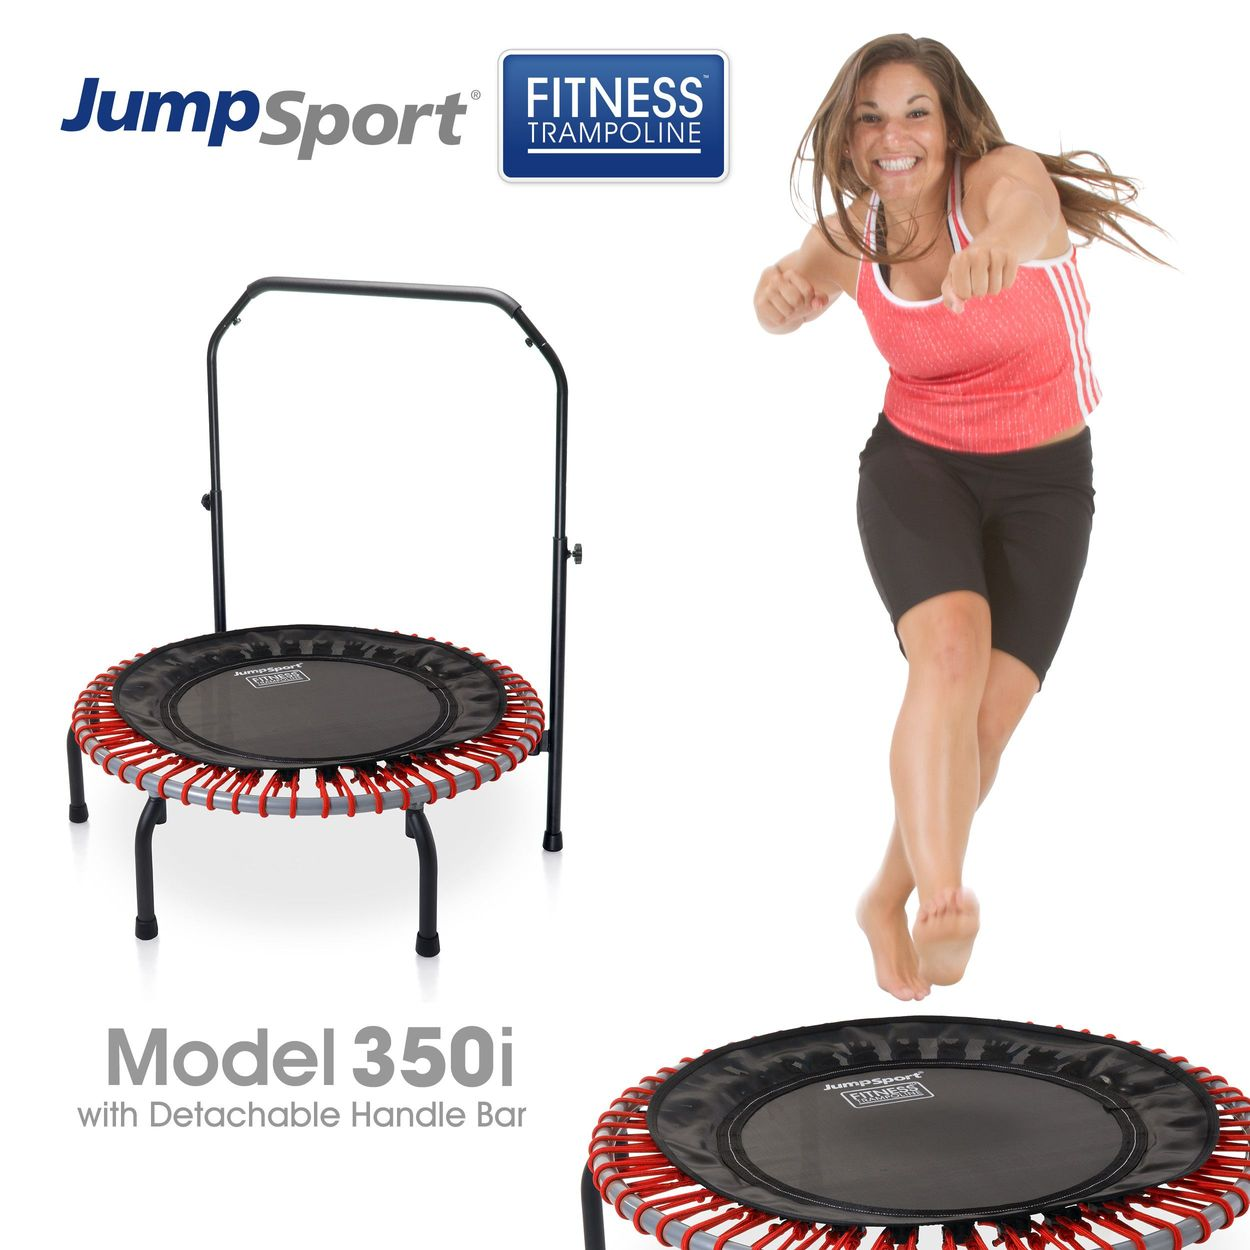 with 1-year of Streaming Video Details about  / JumpSport 550fi Folding Fitness Trampoline